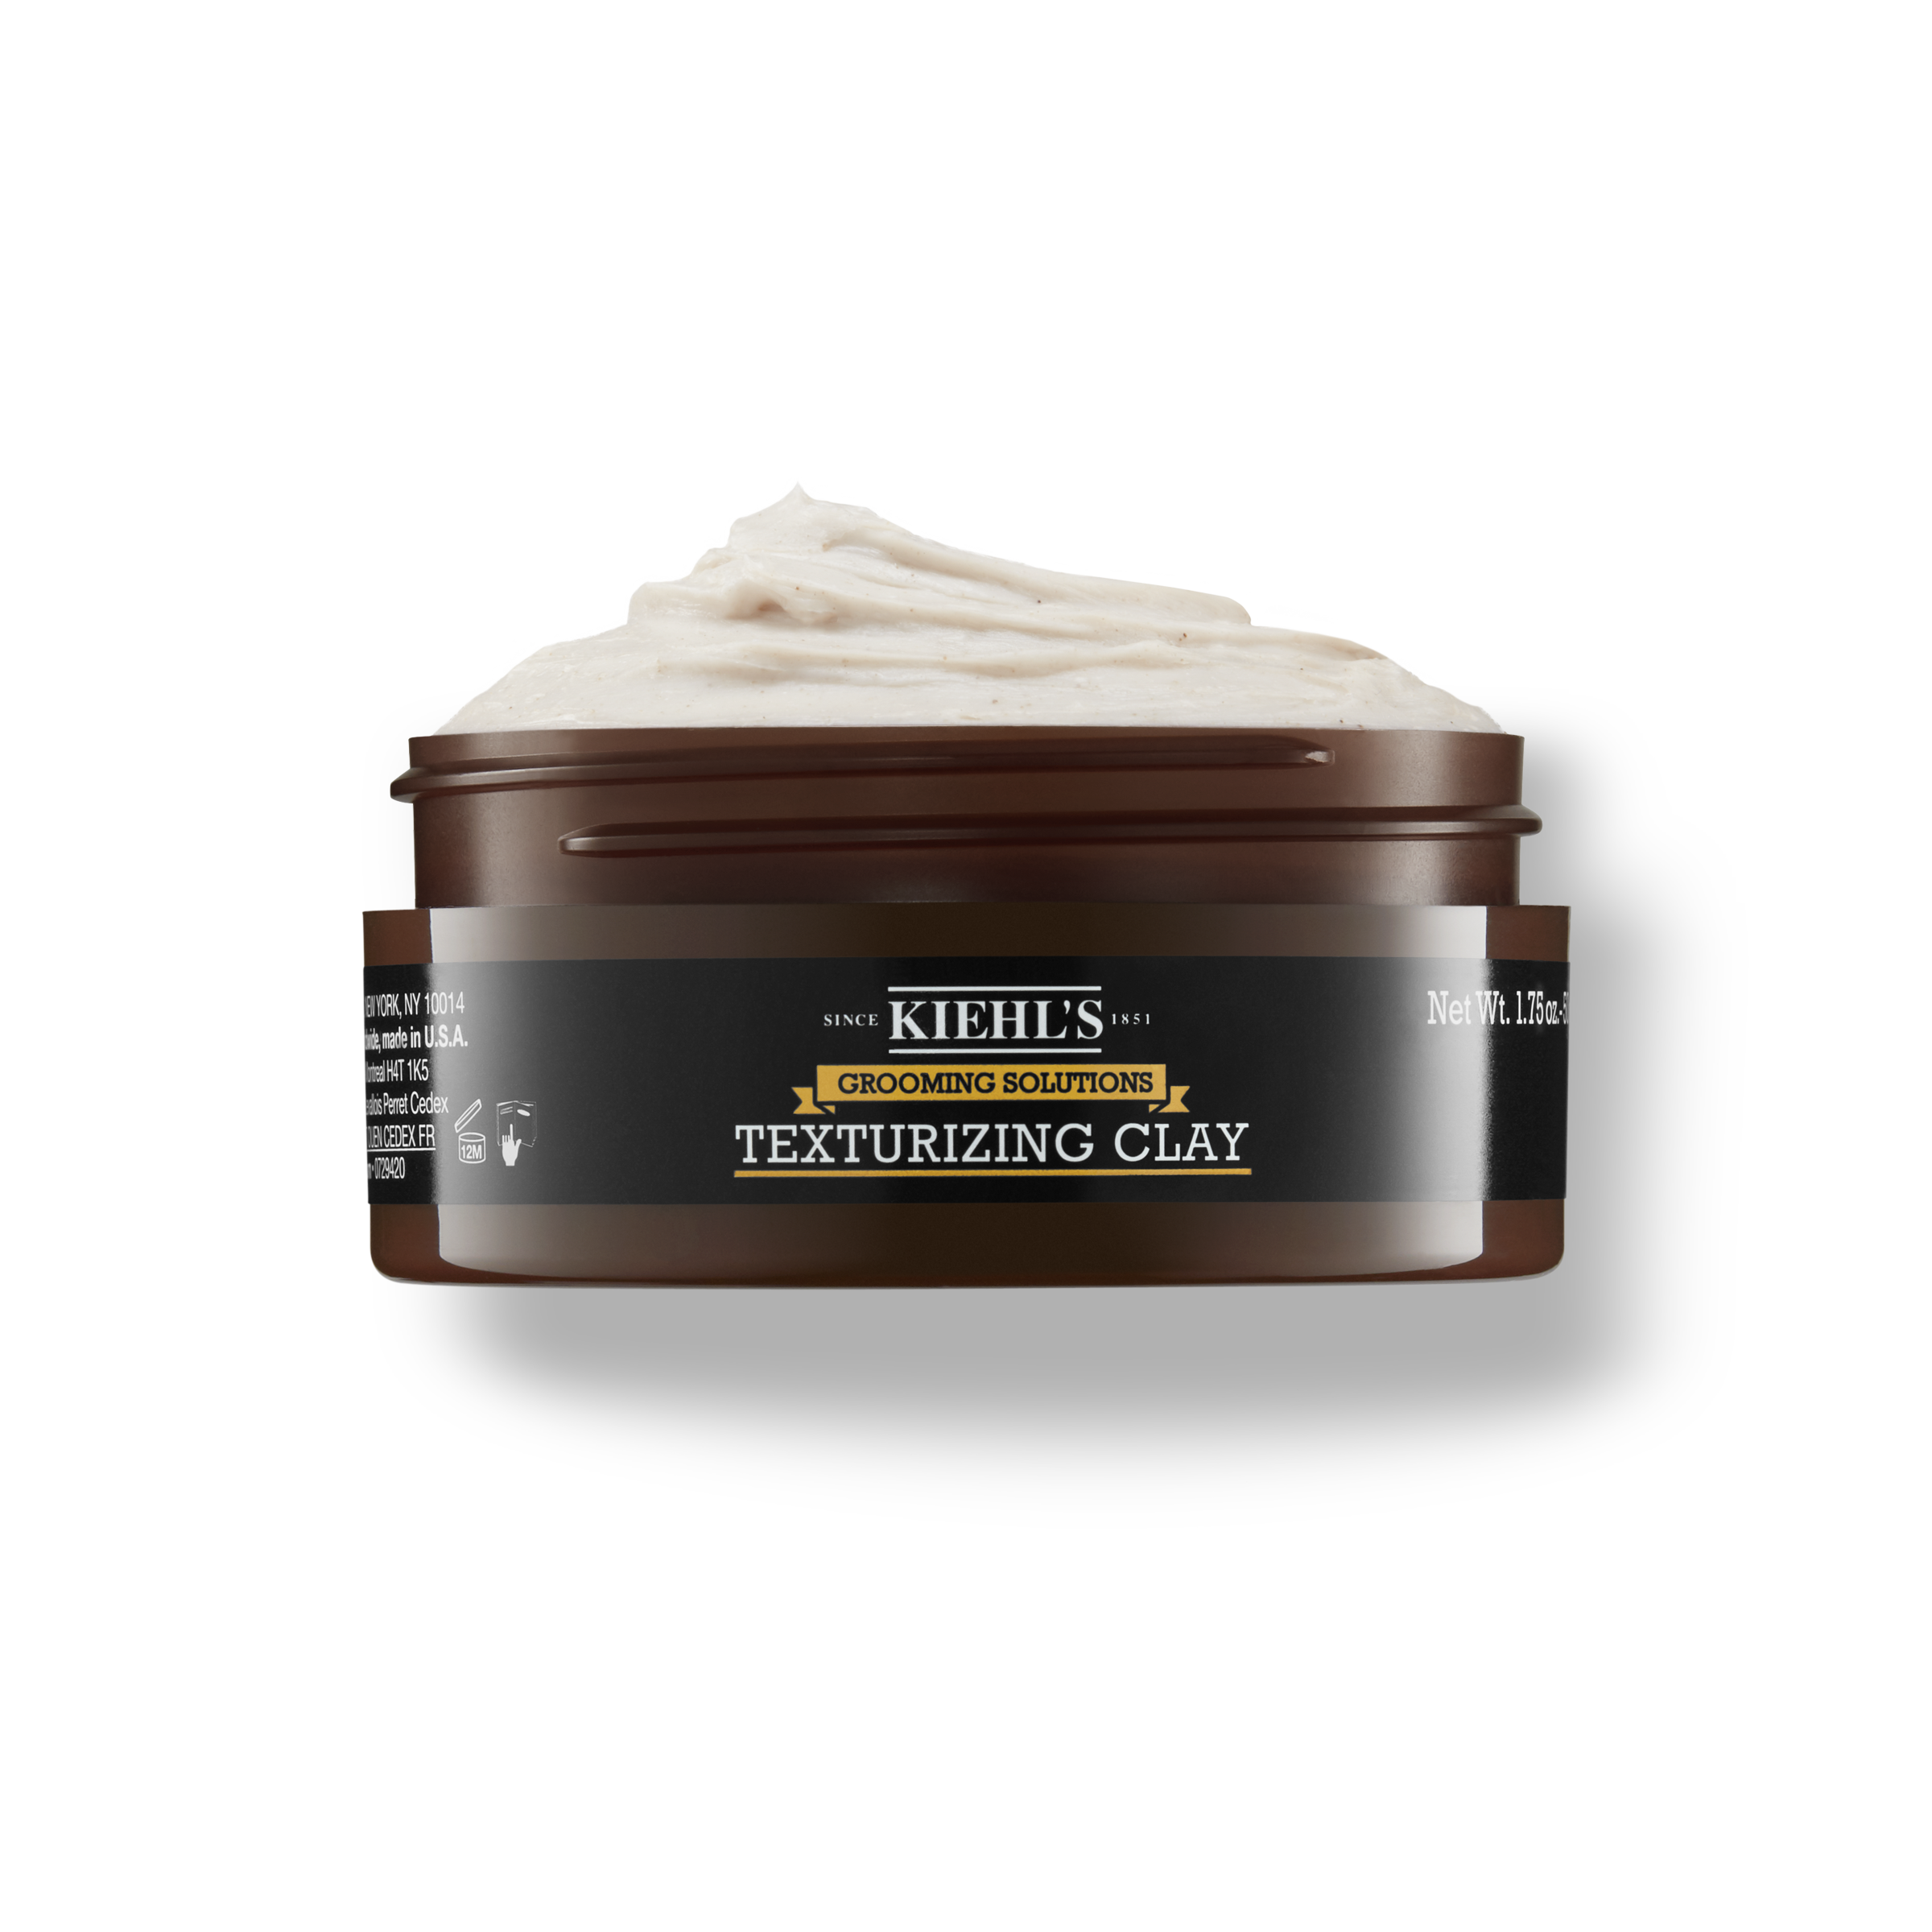 Grooming Solutions Texturizing Clay Matte Hair Clay For Men Kiehl S